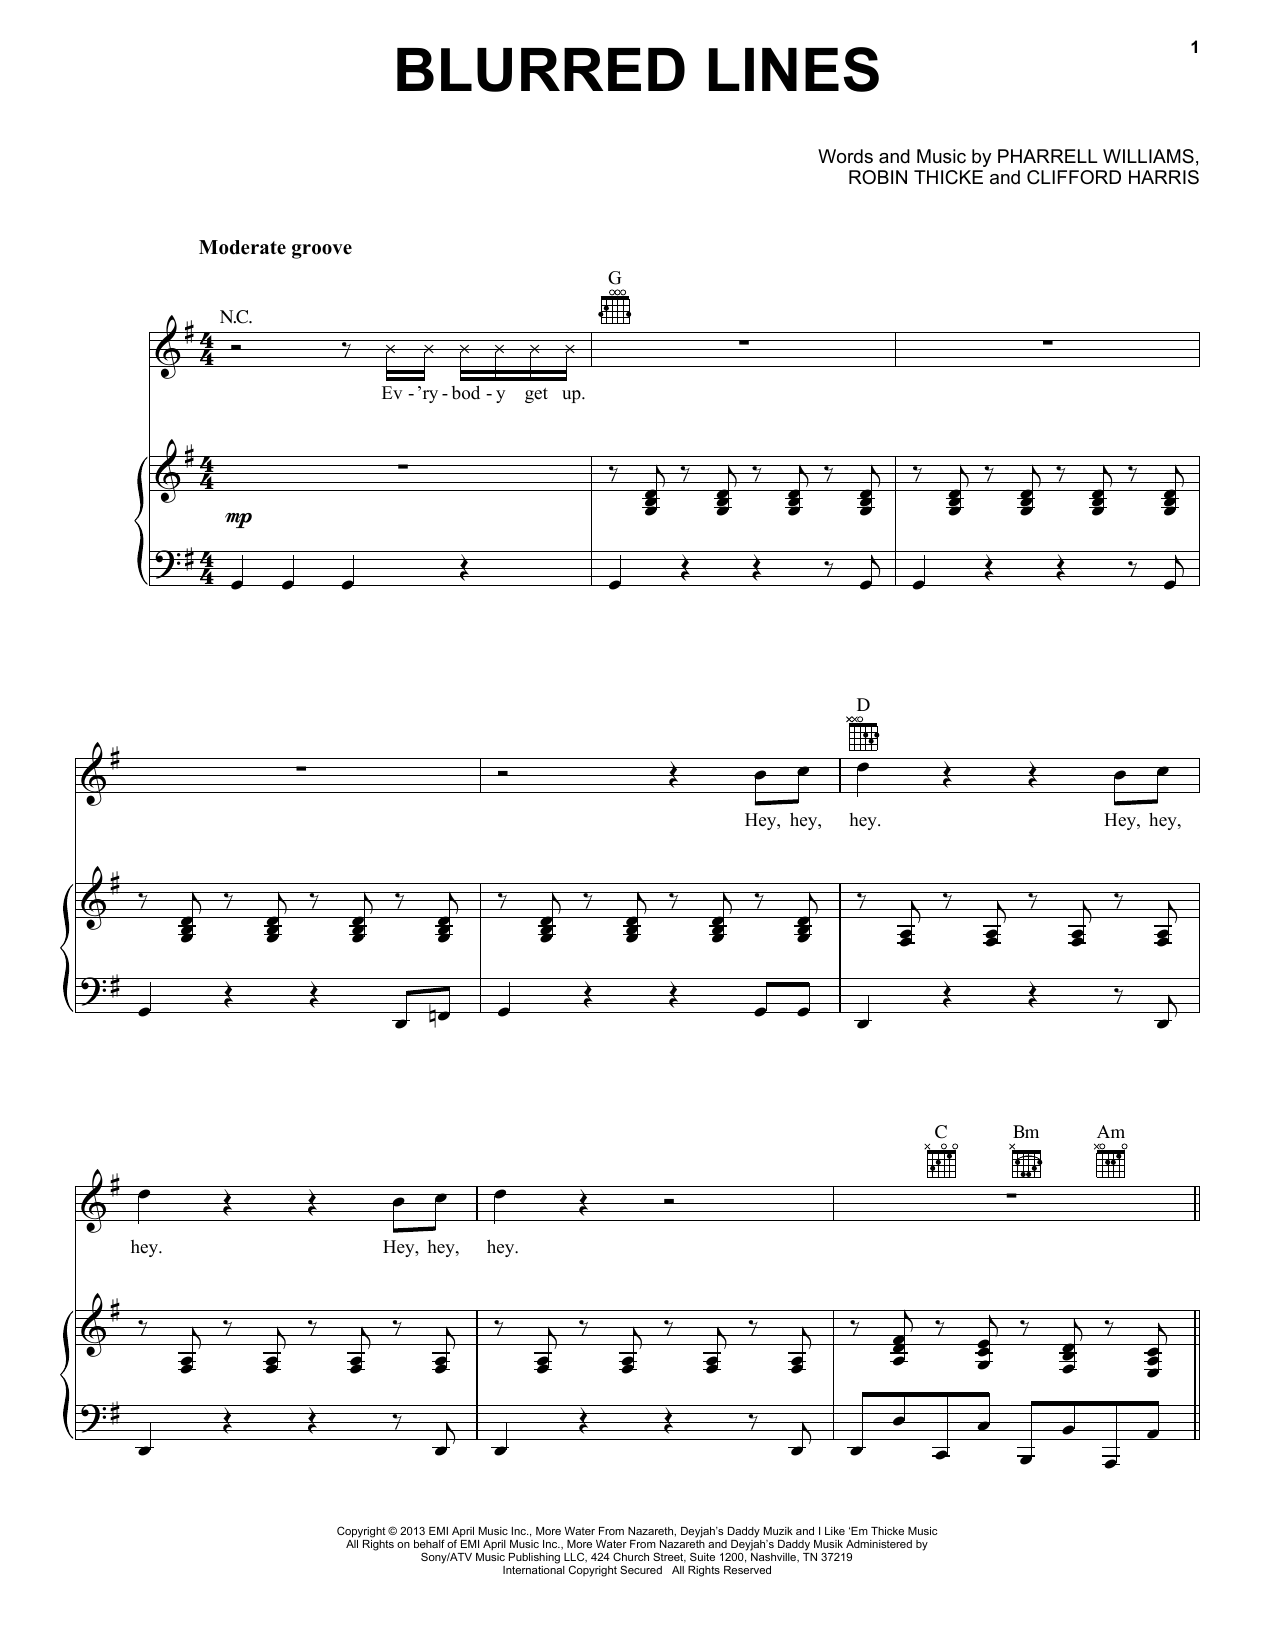 Robin Thicke Blurred Lines sheet music notes and chords. Download Printable PDF.